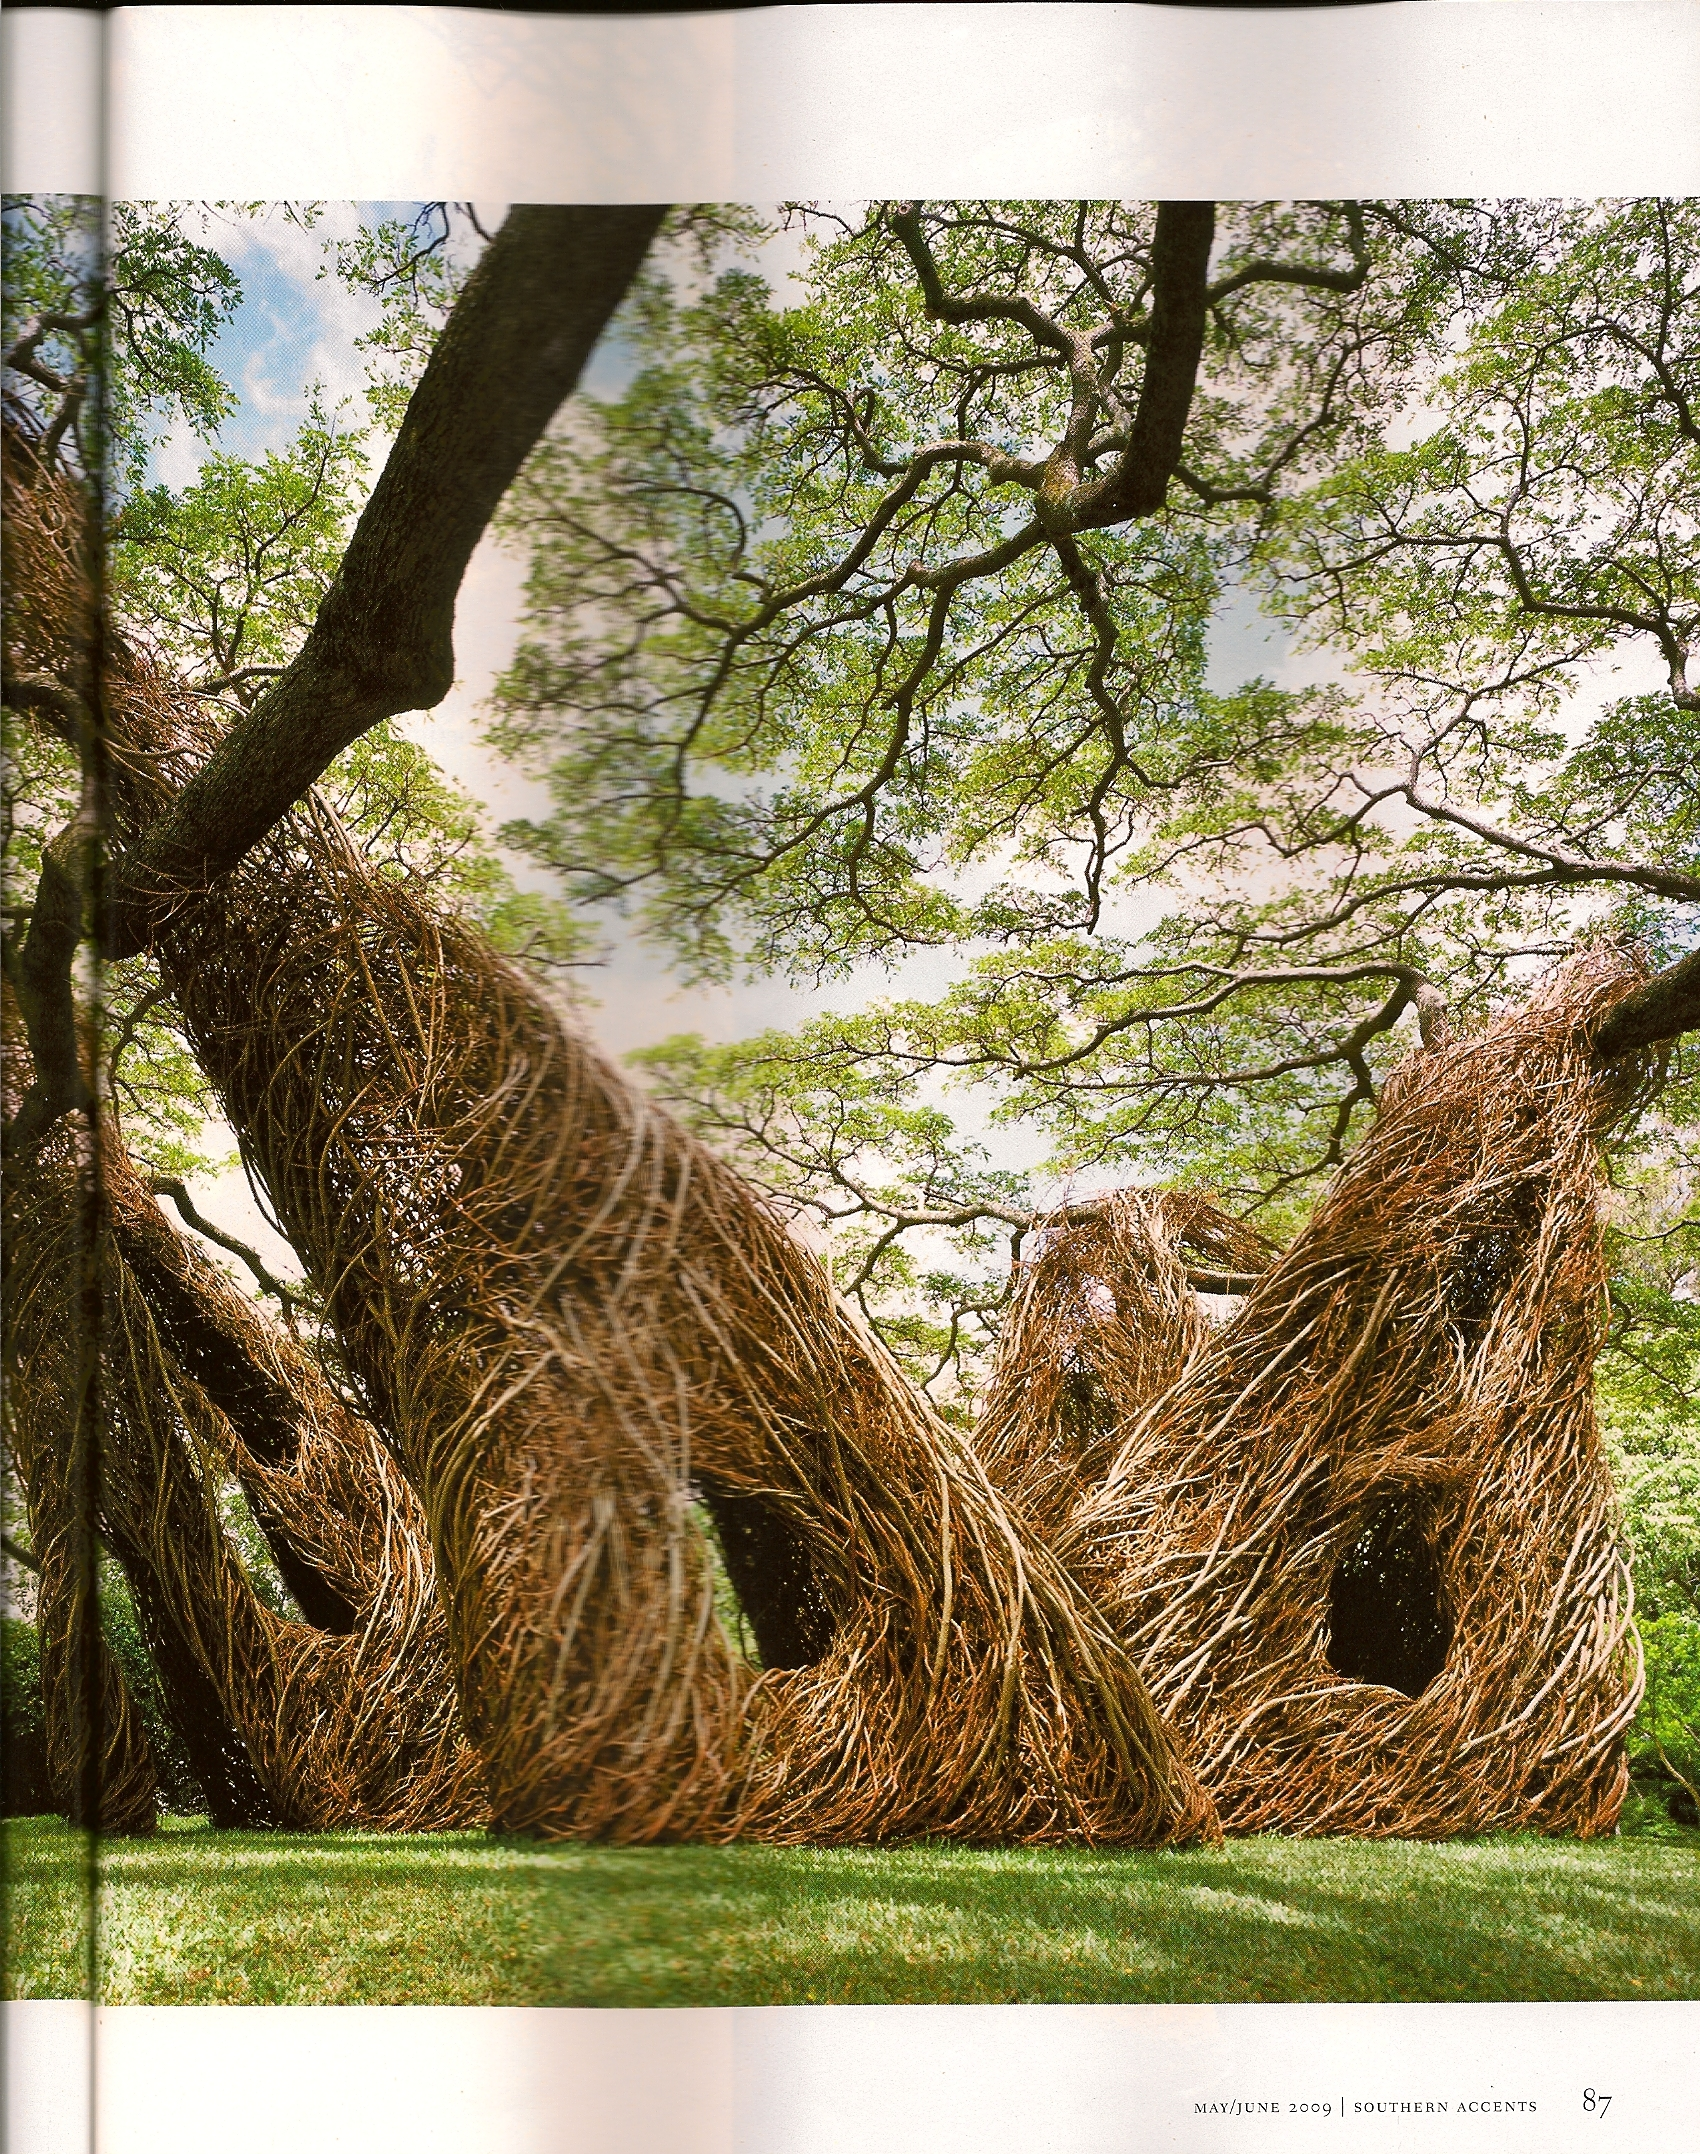 twig-art by Patrick Dougherty via Southern Accents, May/June 2009